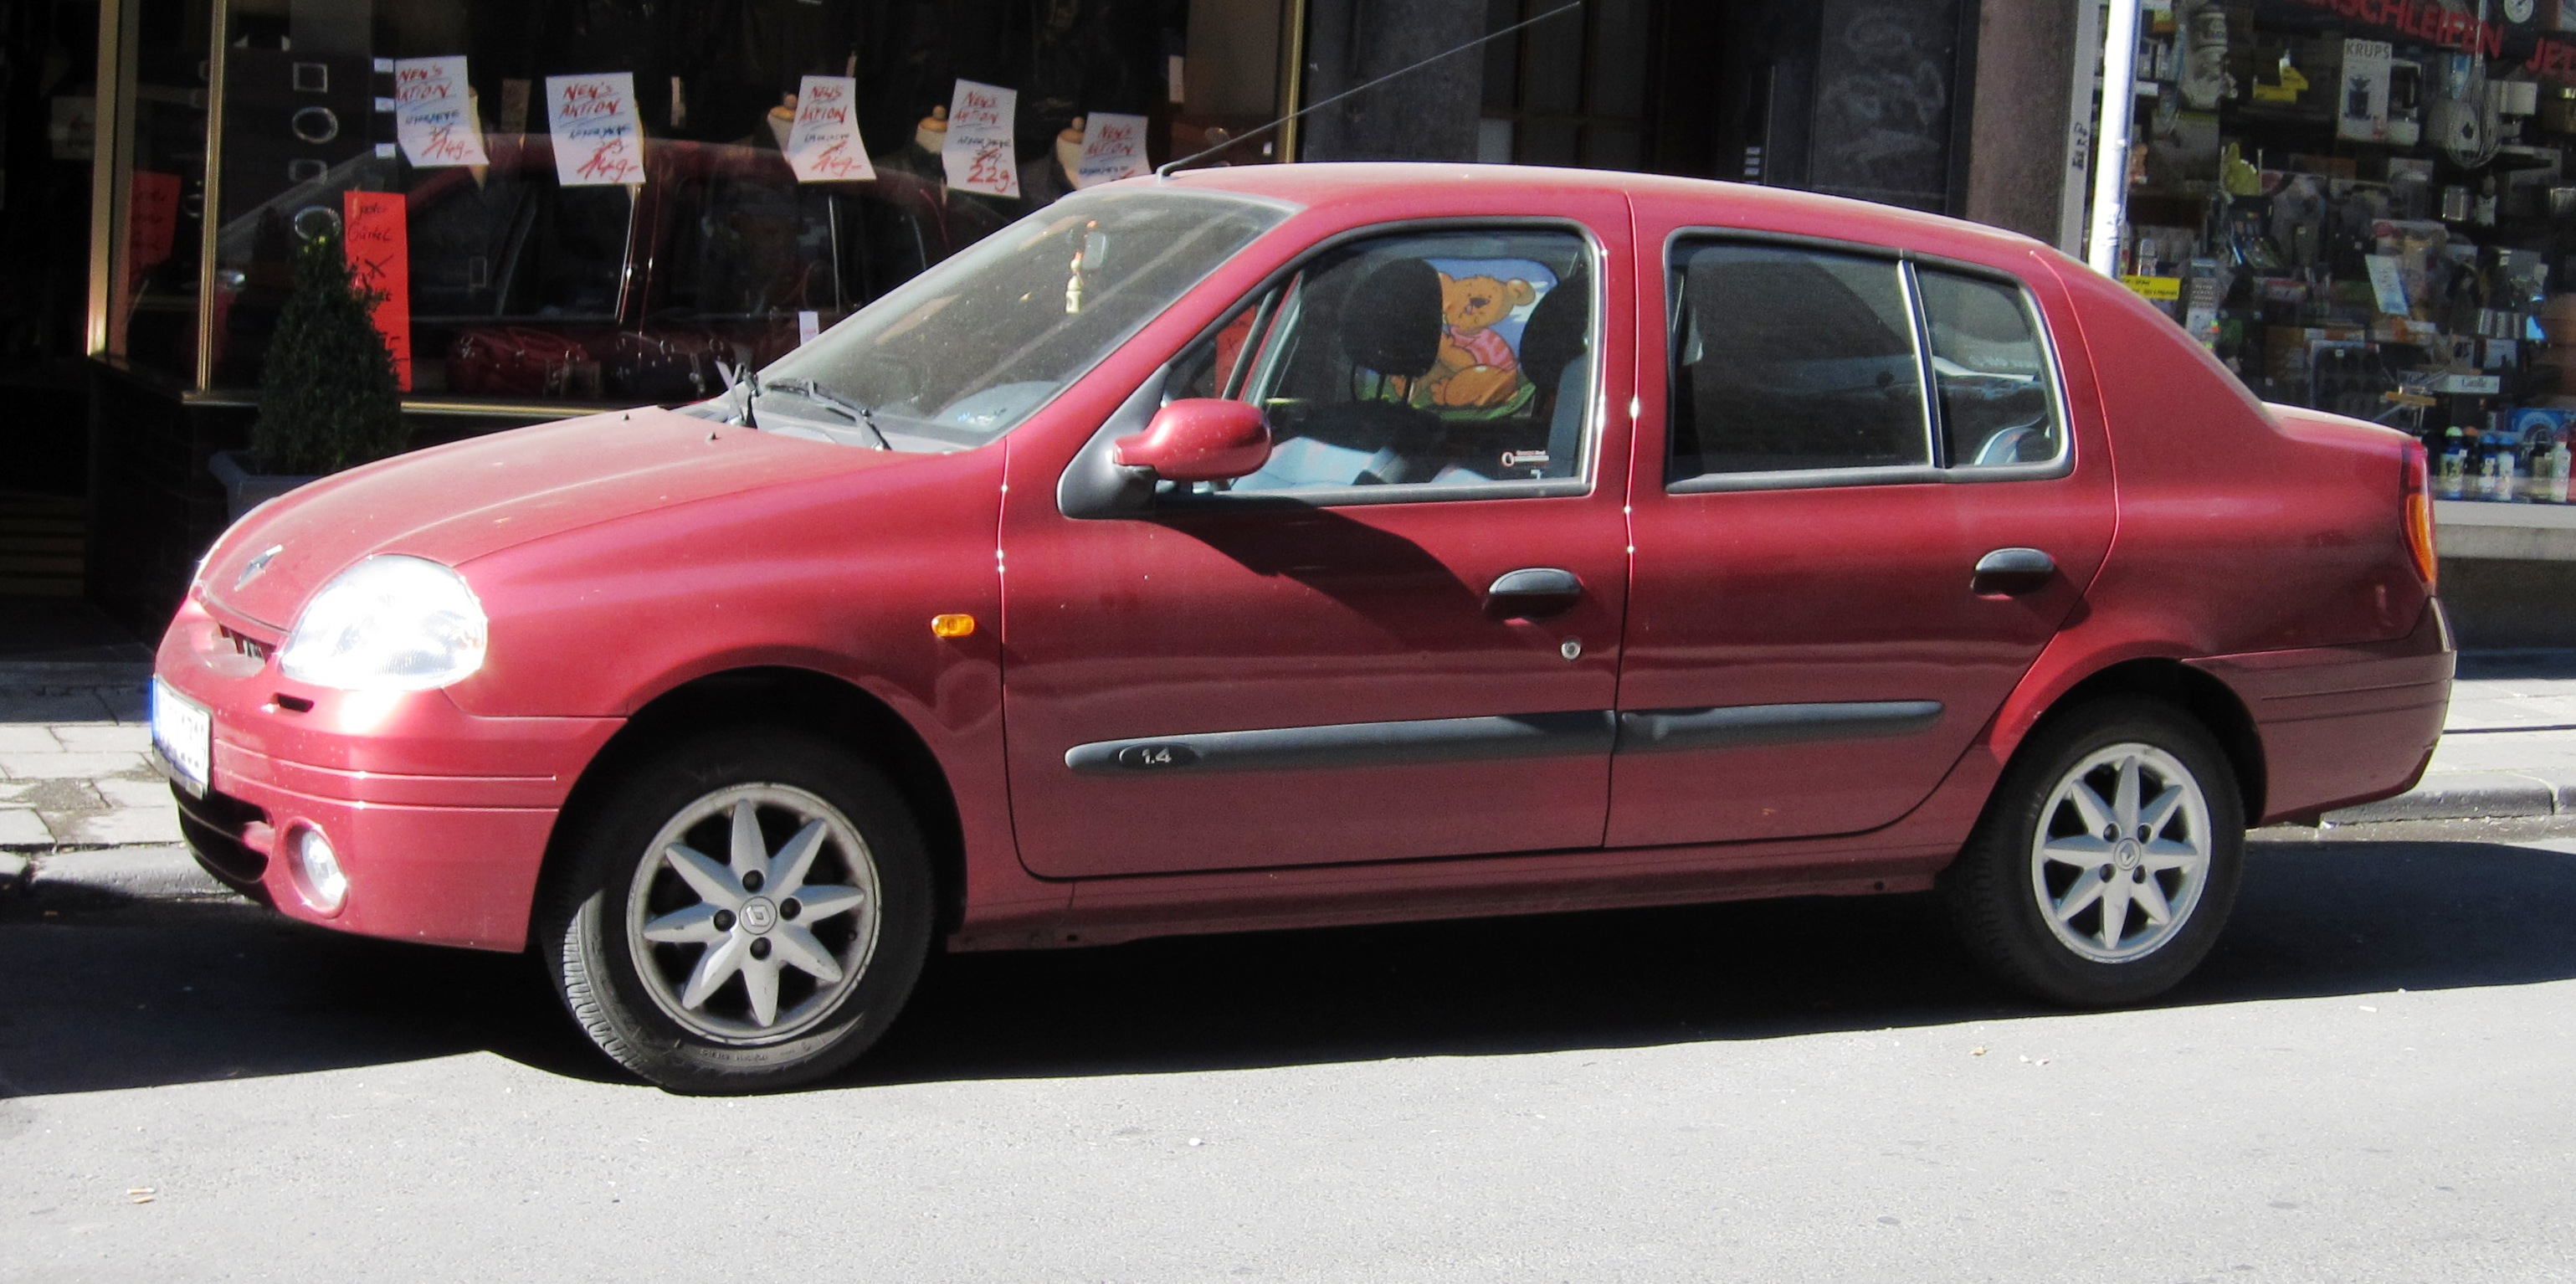 Filerenault Clio 4 Door Notchback In Aacheng Wikimedia Commons